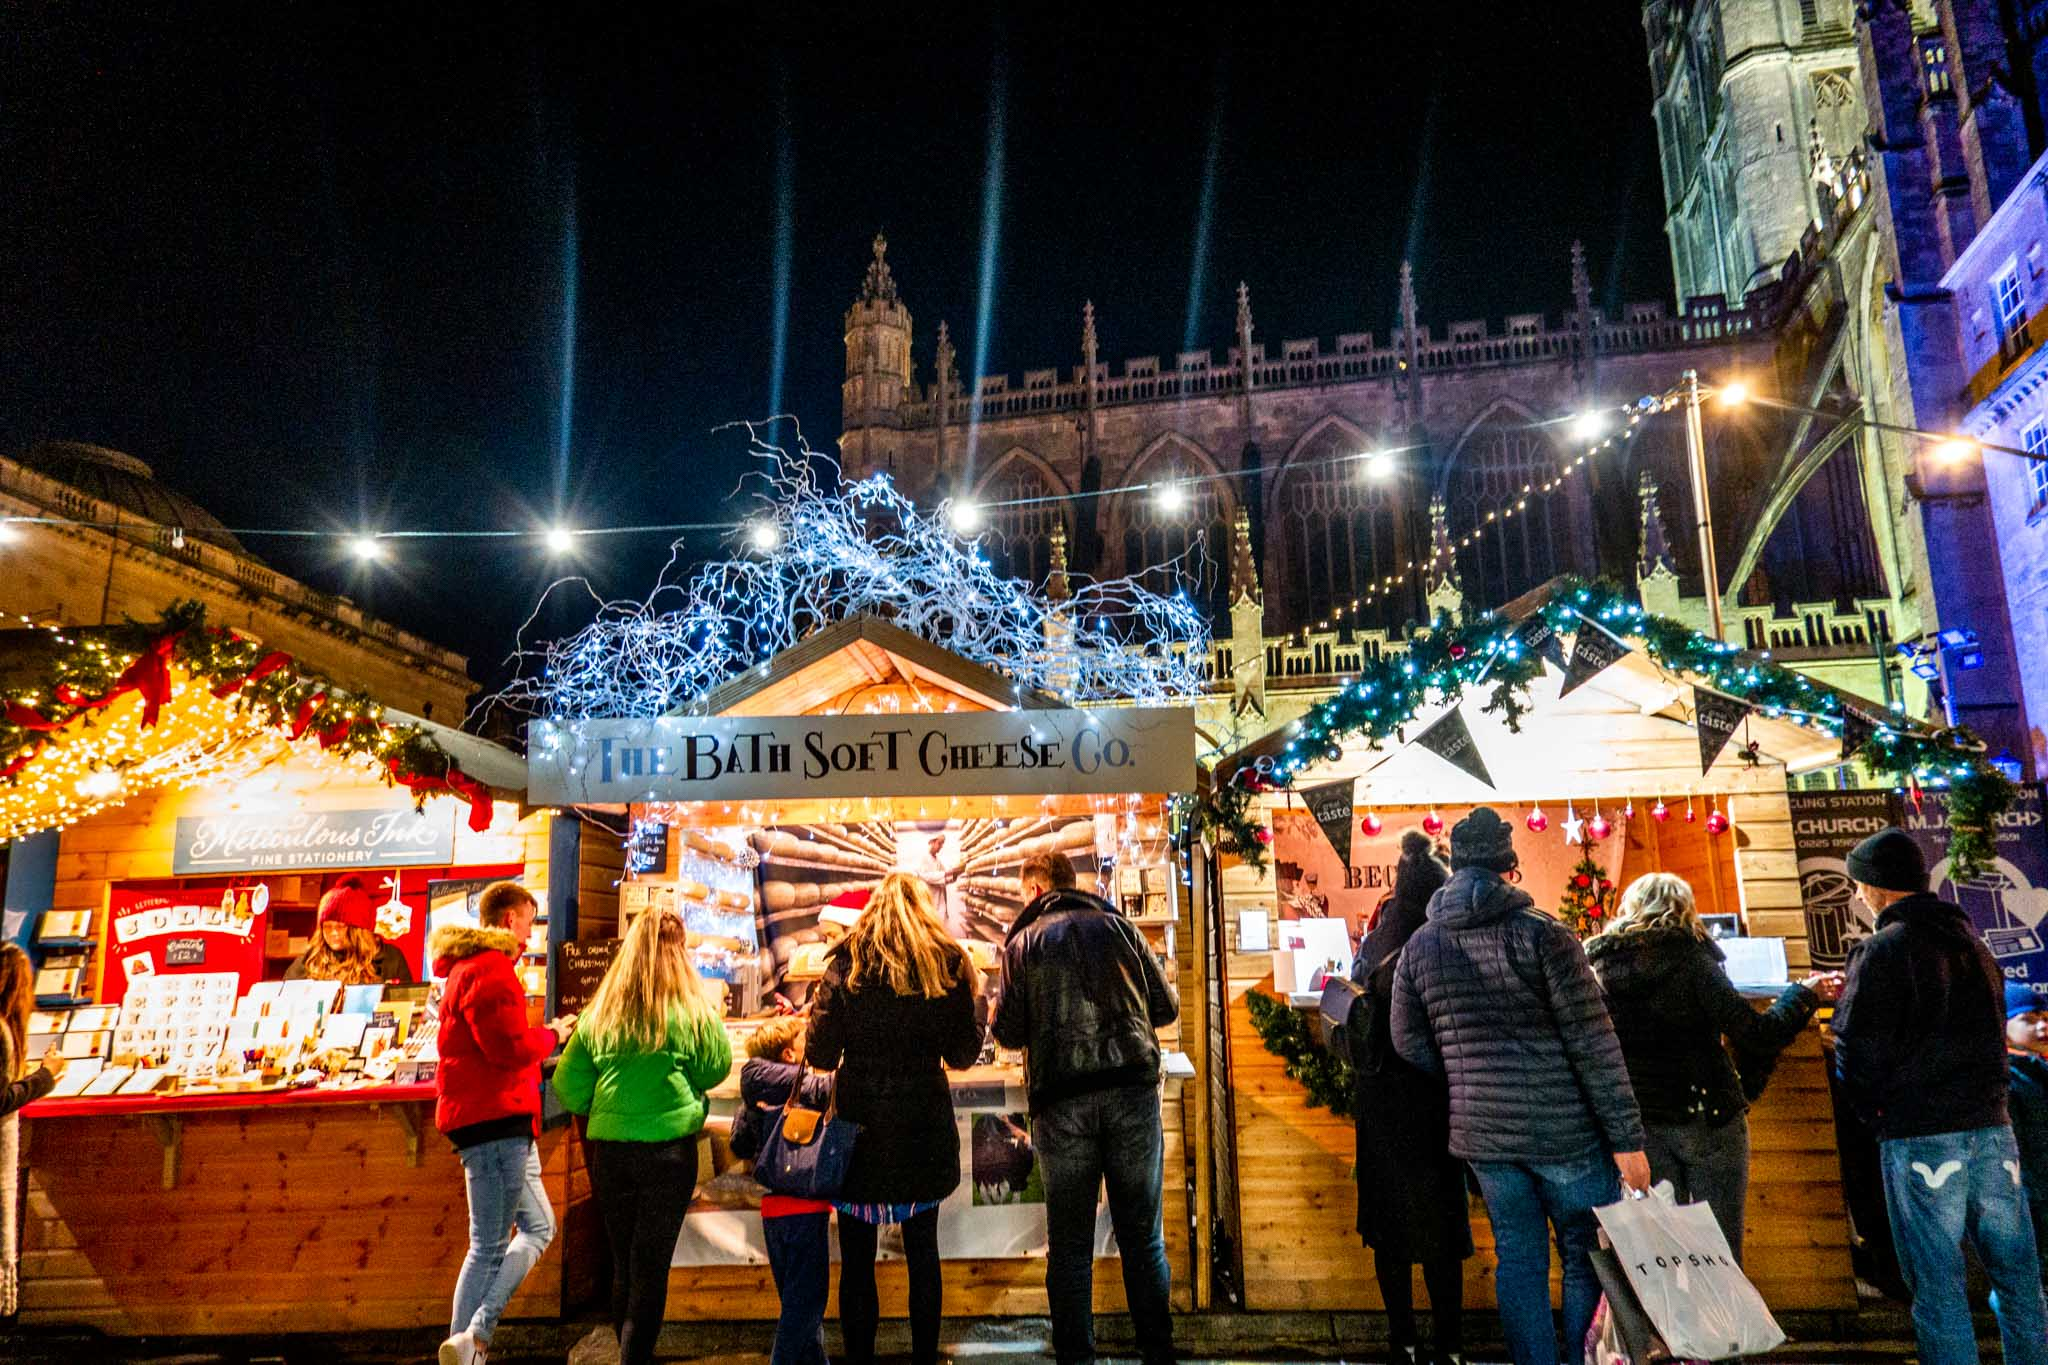 Wooden chalets lit up at night and shoppers in front of Bath Abbey at the Bath Christmas market